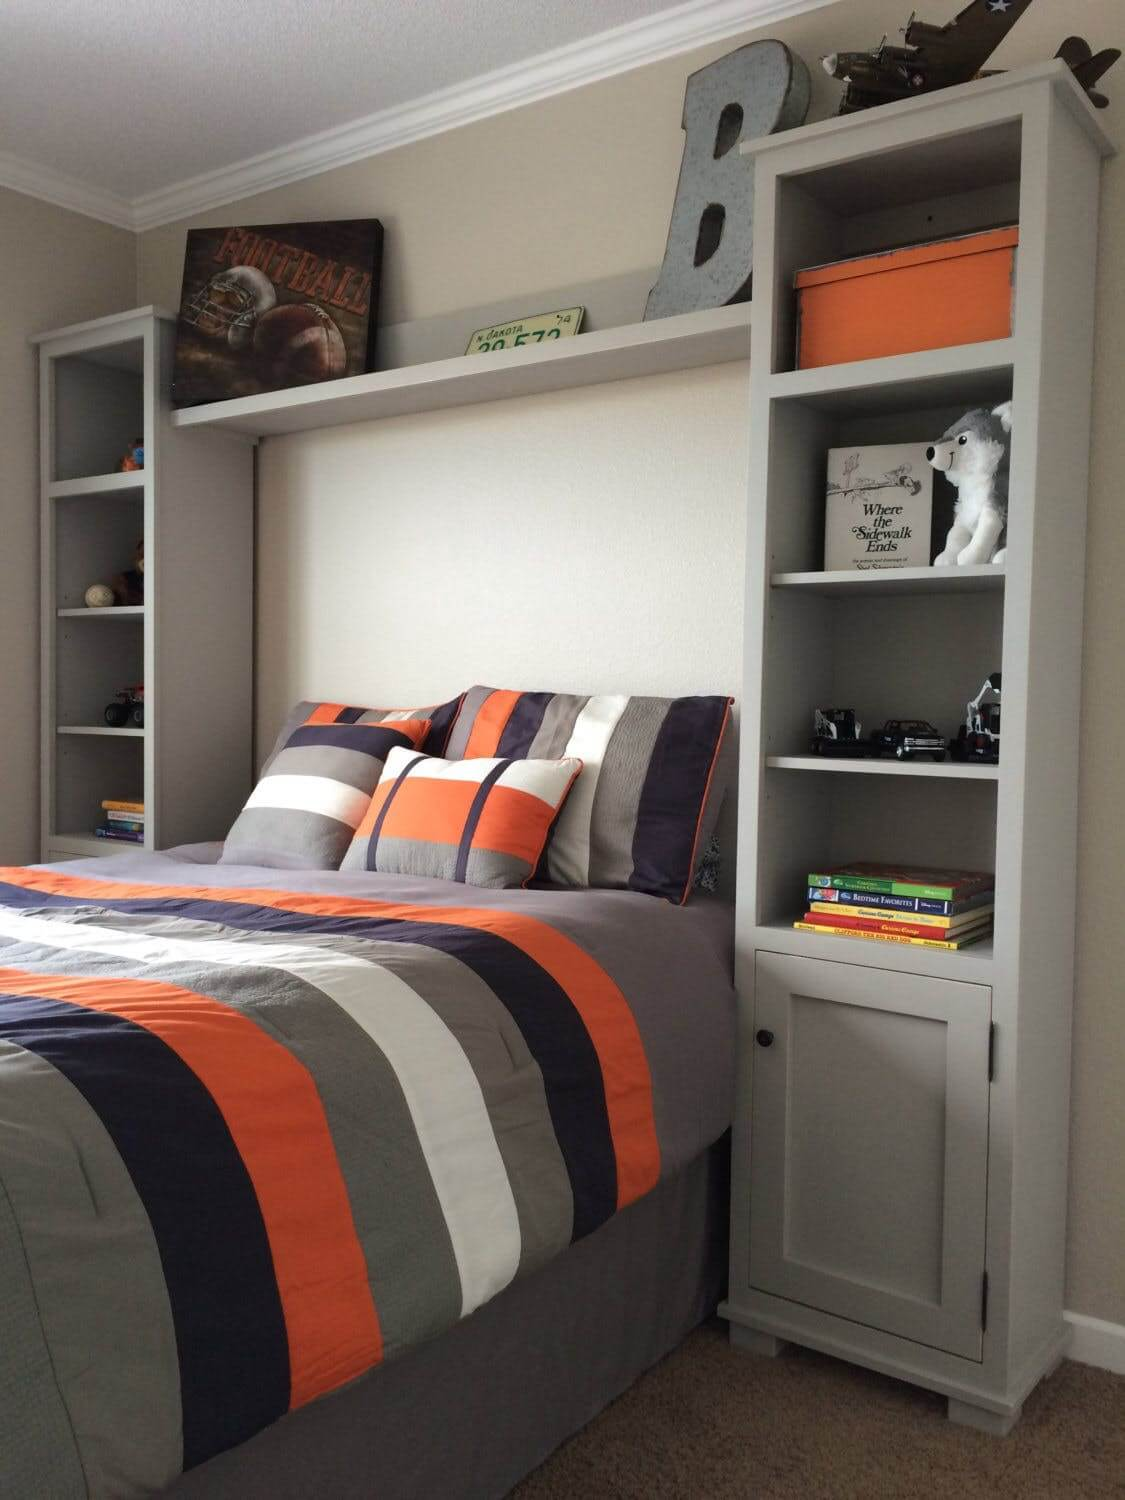 33 Best Teenage Boy Room Decor Ideas and Designs for 2020 on Teenage Boy Room  id=44484